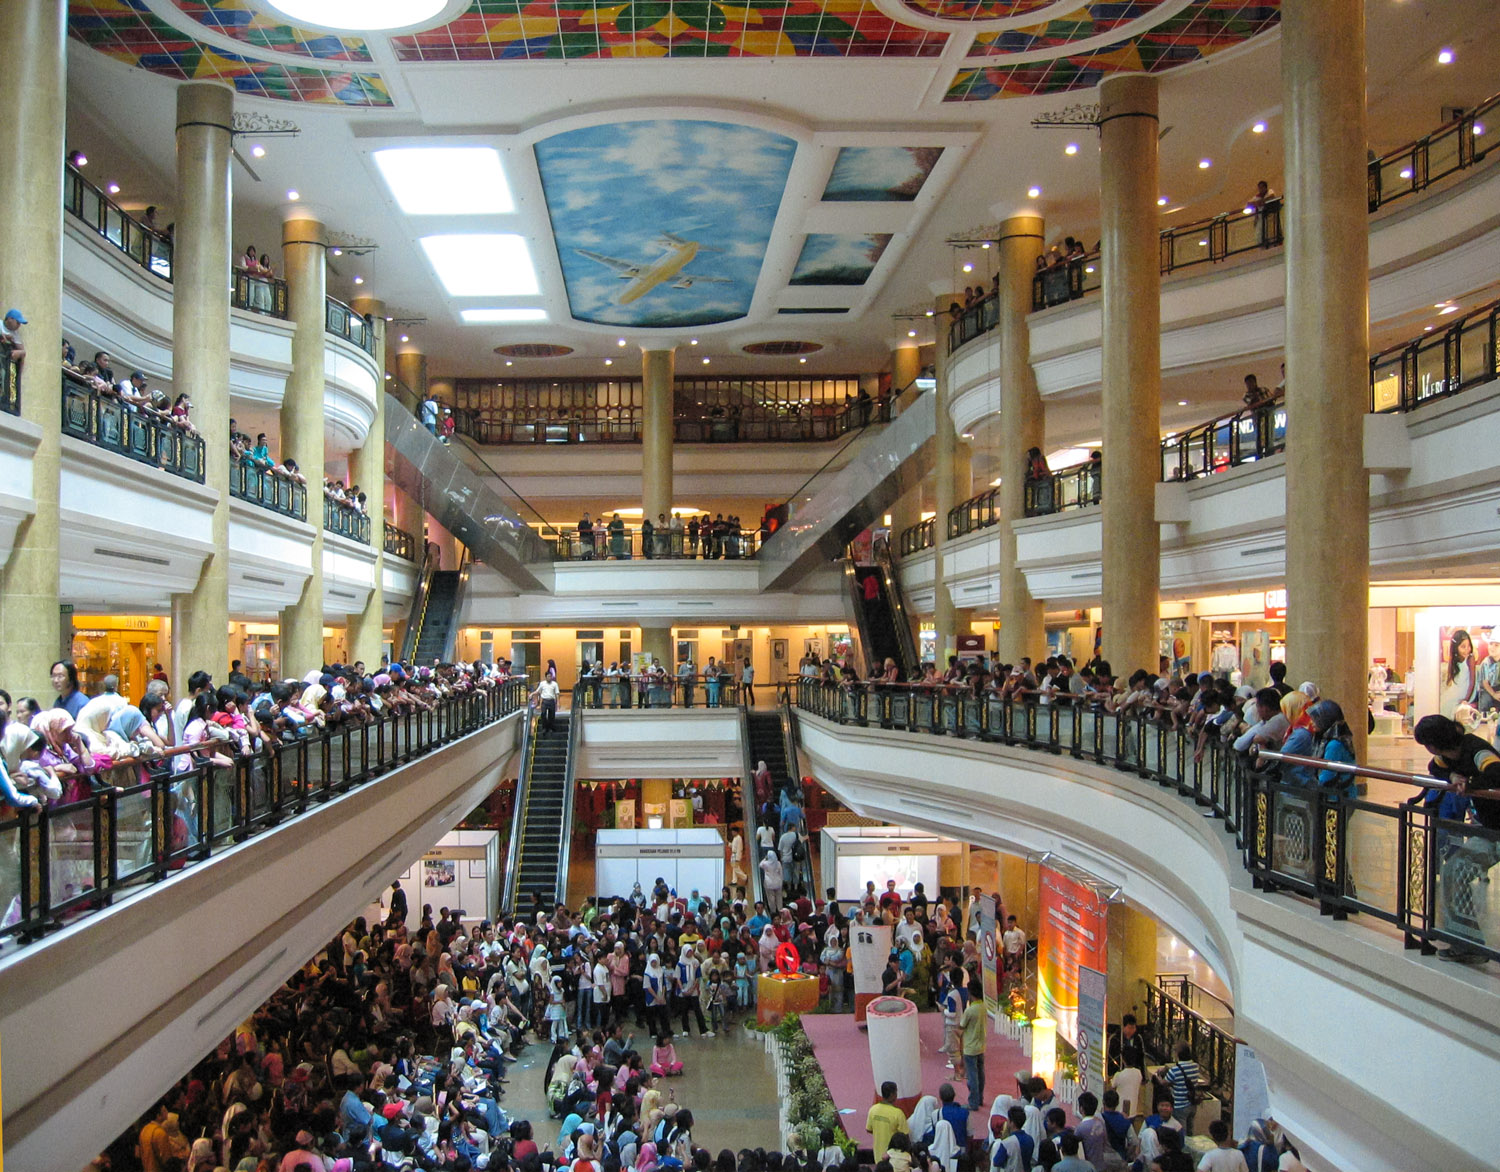 Shoppers watch an event in a Gadong shopping mall. Image:  © Alan Williams